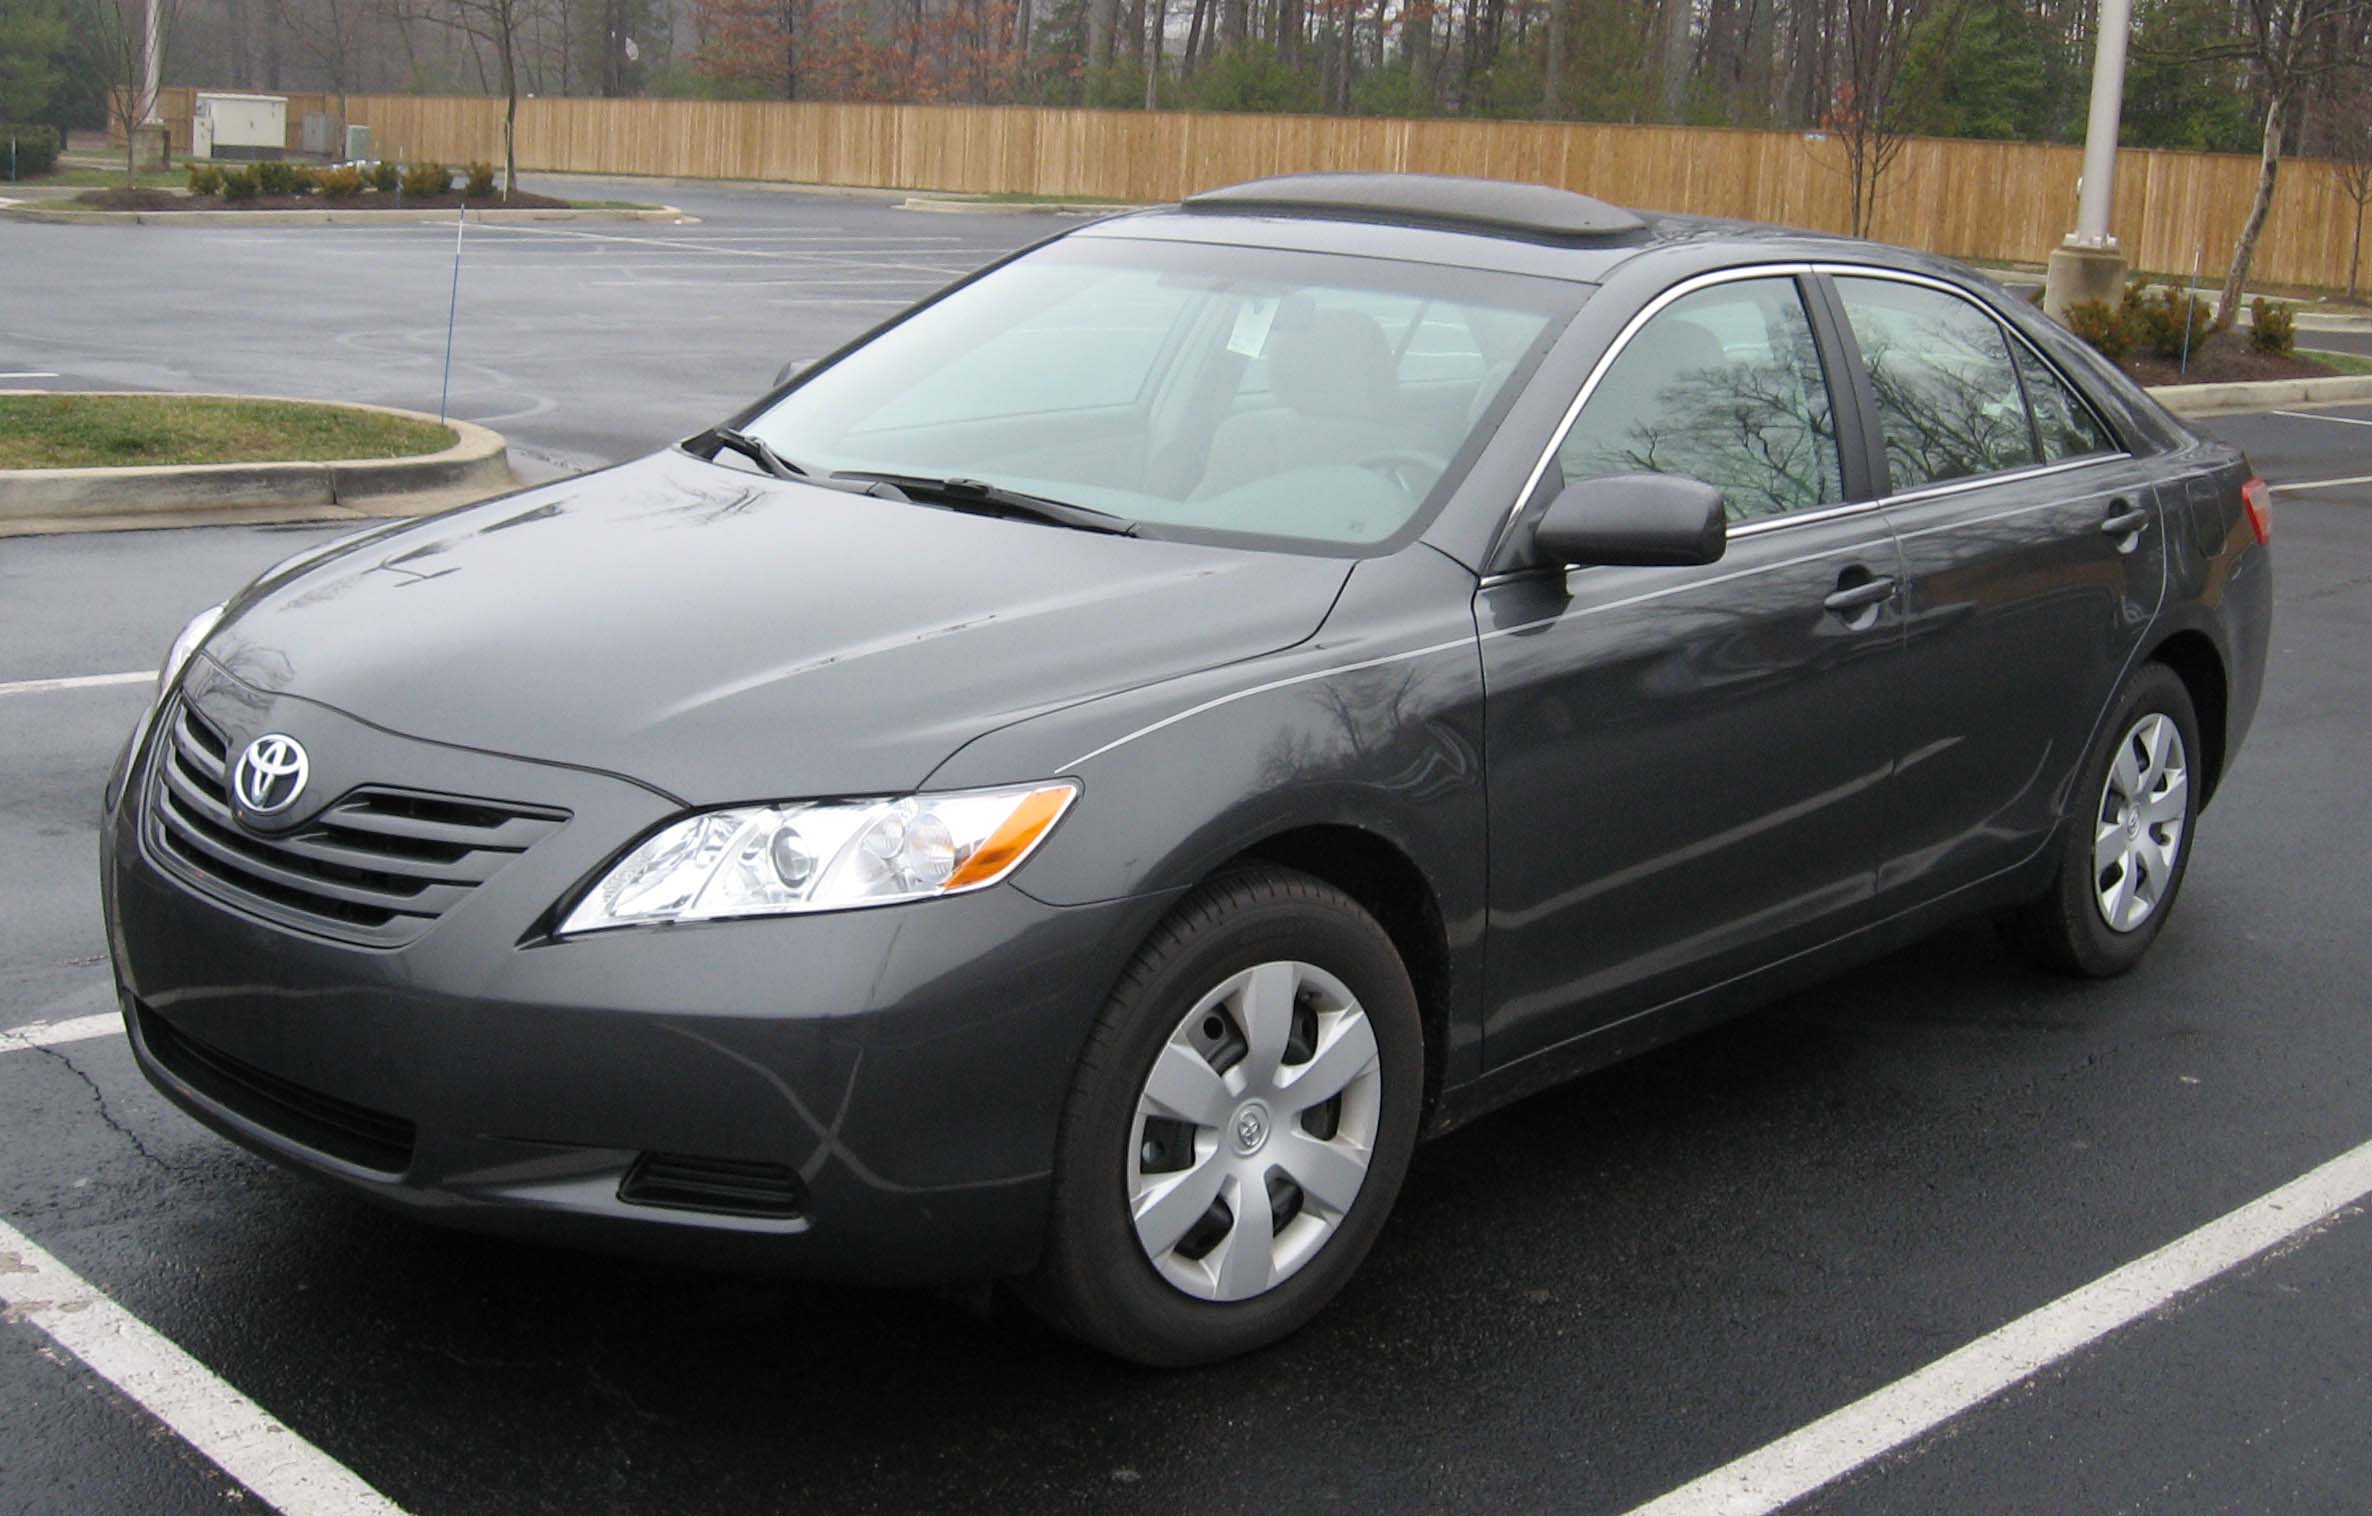 toyota camry year to year changes 2013 toyota camry price photos reviews features 2014 vs 2015. Black Bedroom Furniture Sets. Home Design Ideas